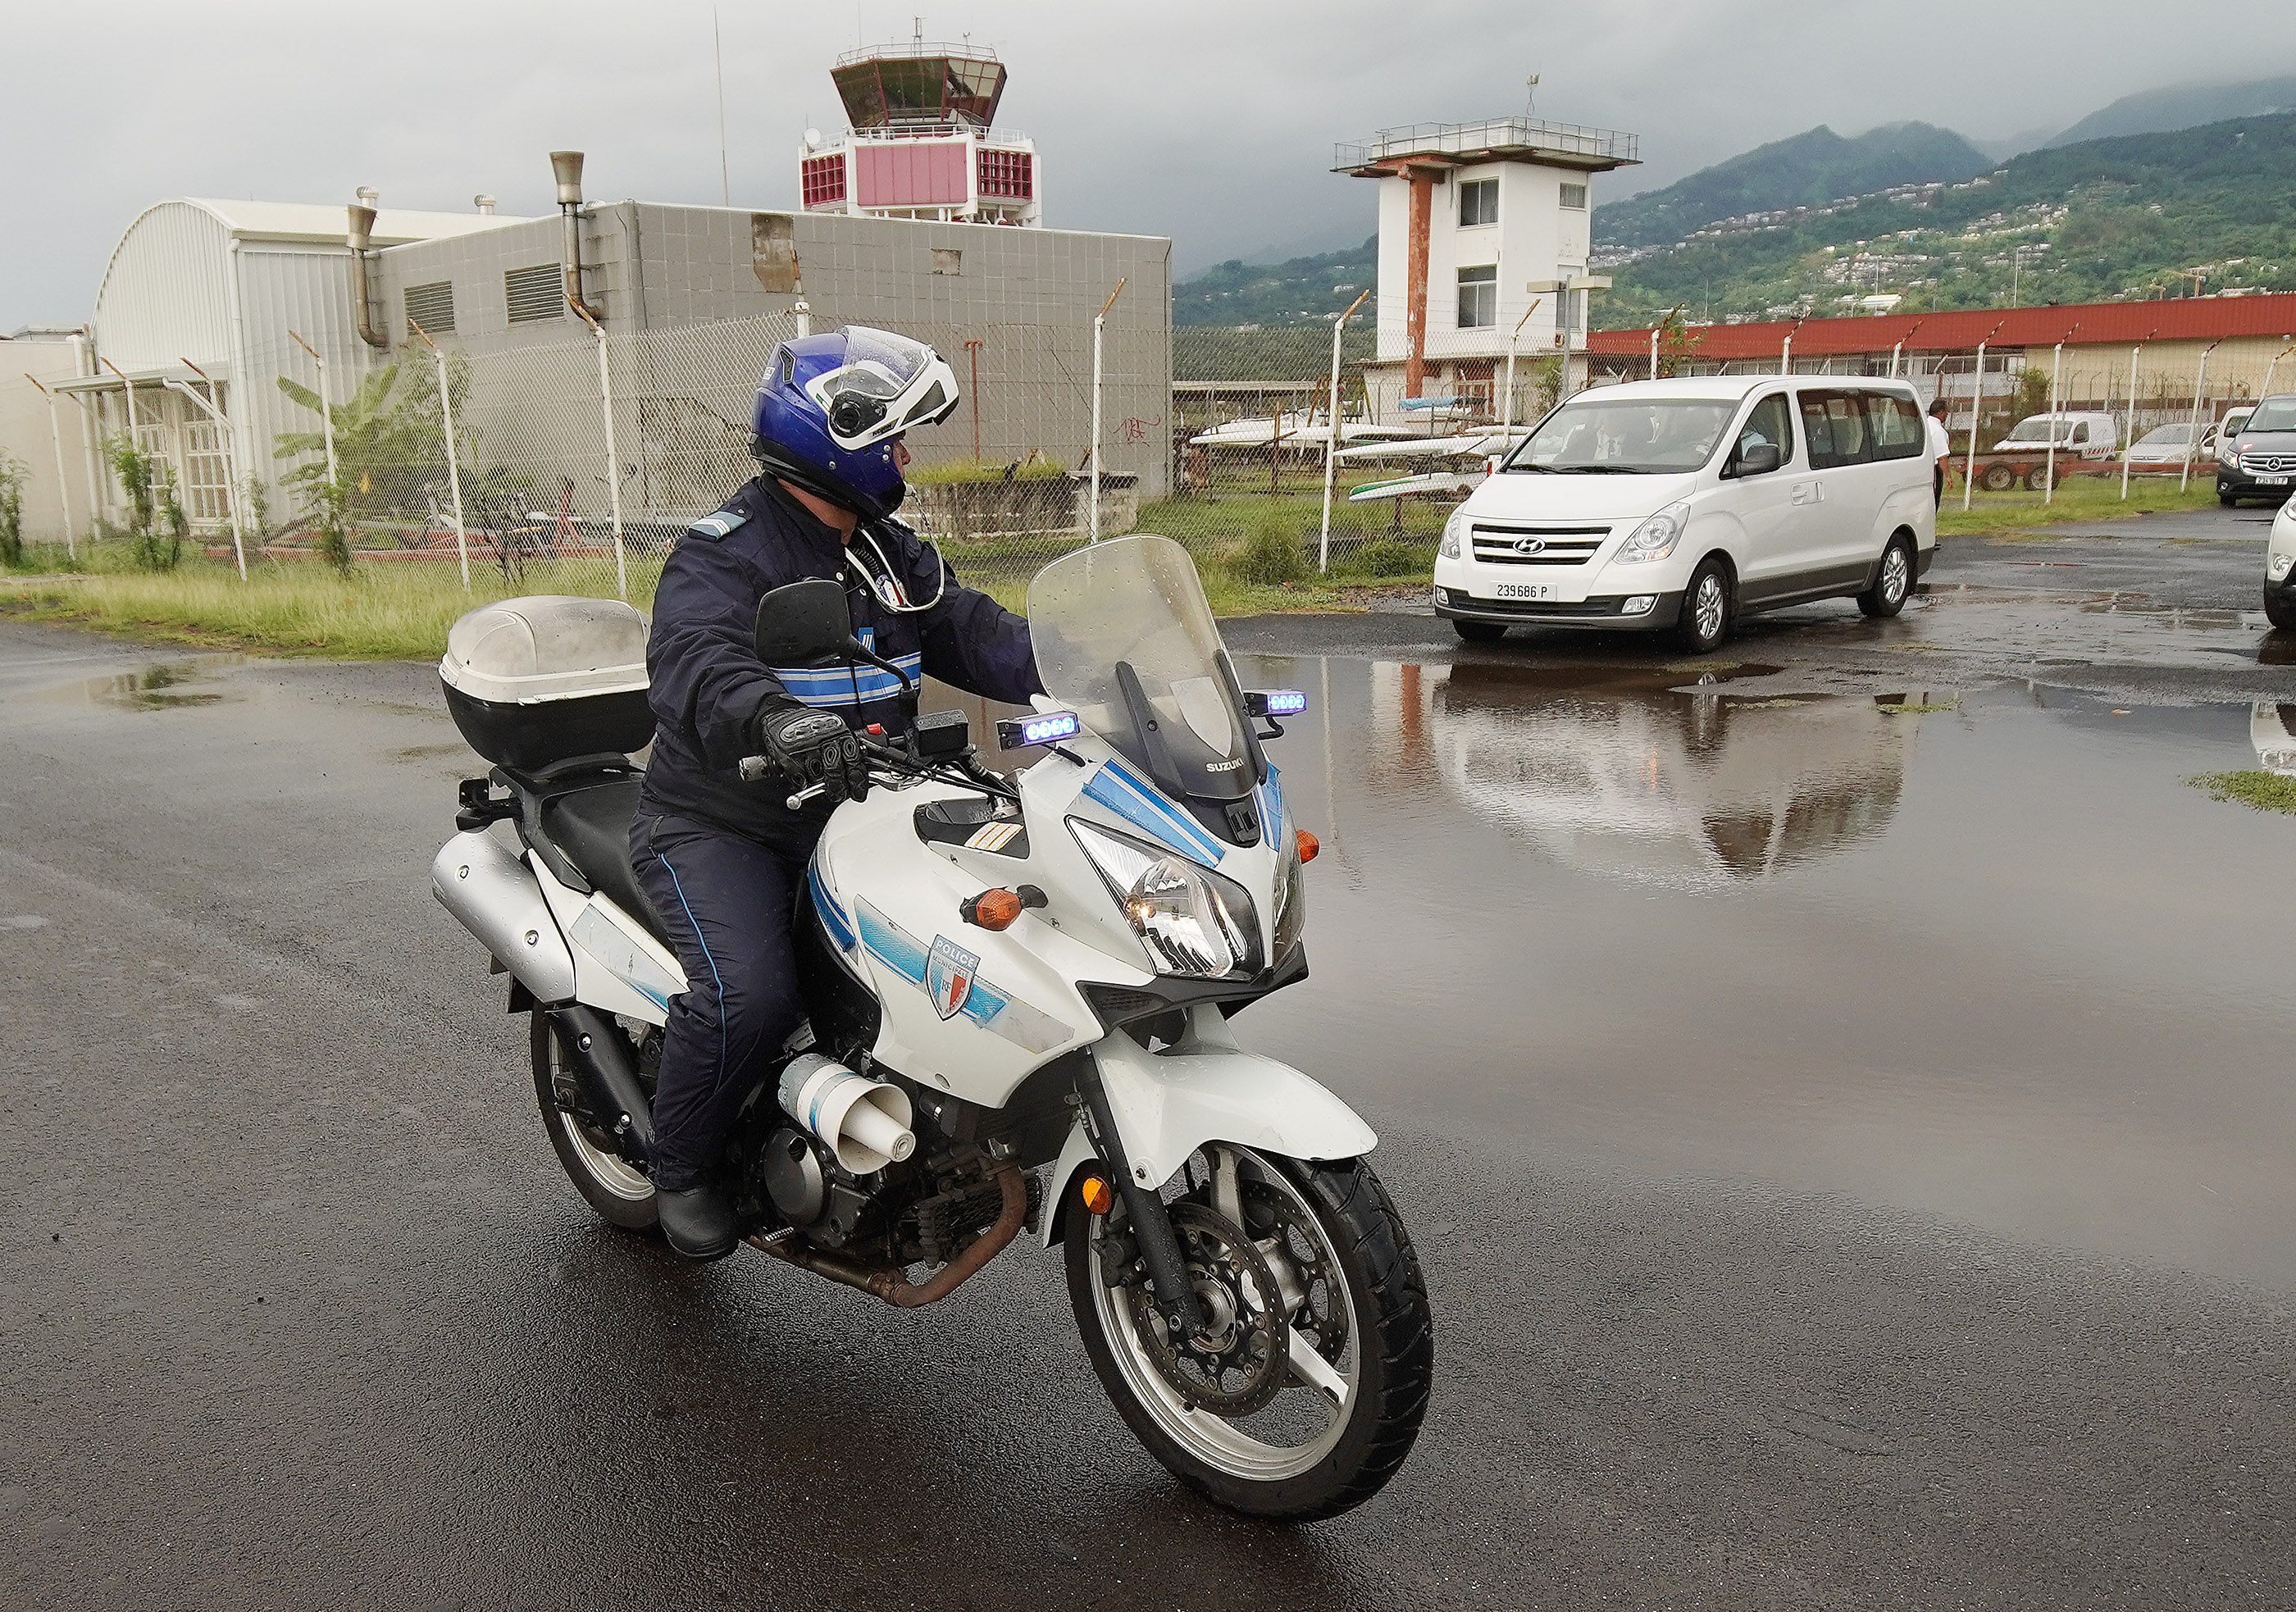 Police escort President Russell M. Nelson of The Church of Jesus Christ of Latter-day Saints upon arrival in Papeete, Tahiti, on May 23, 2019.